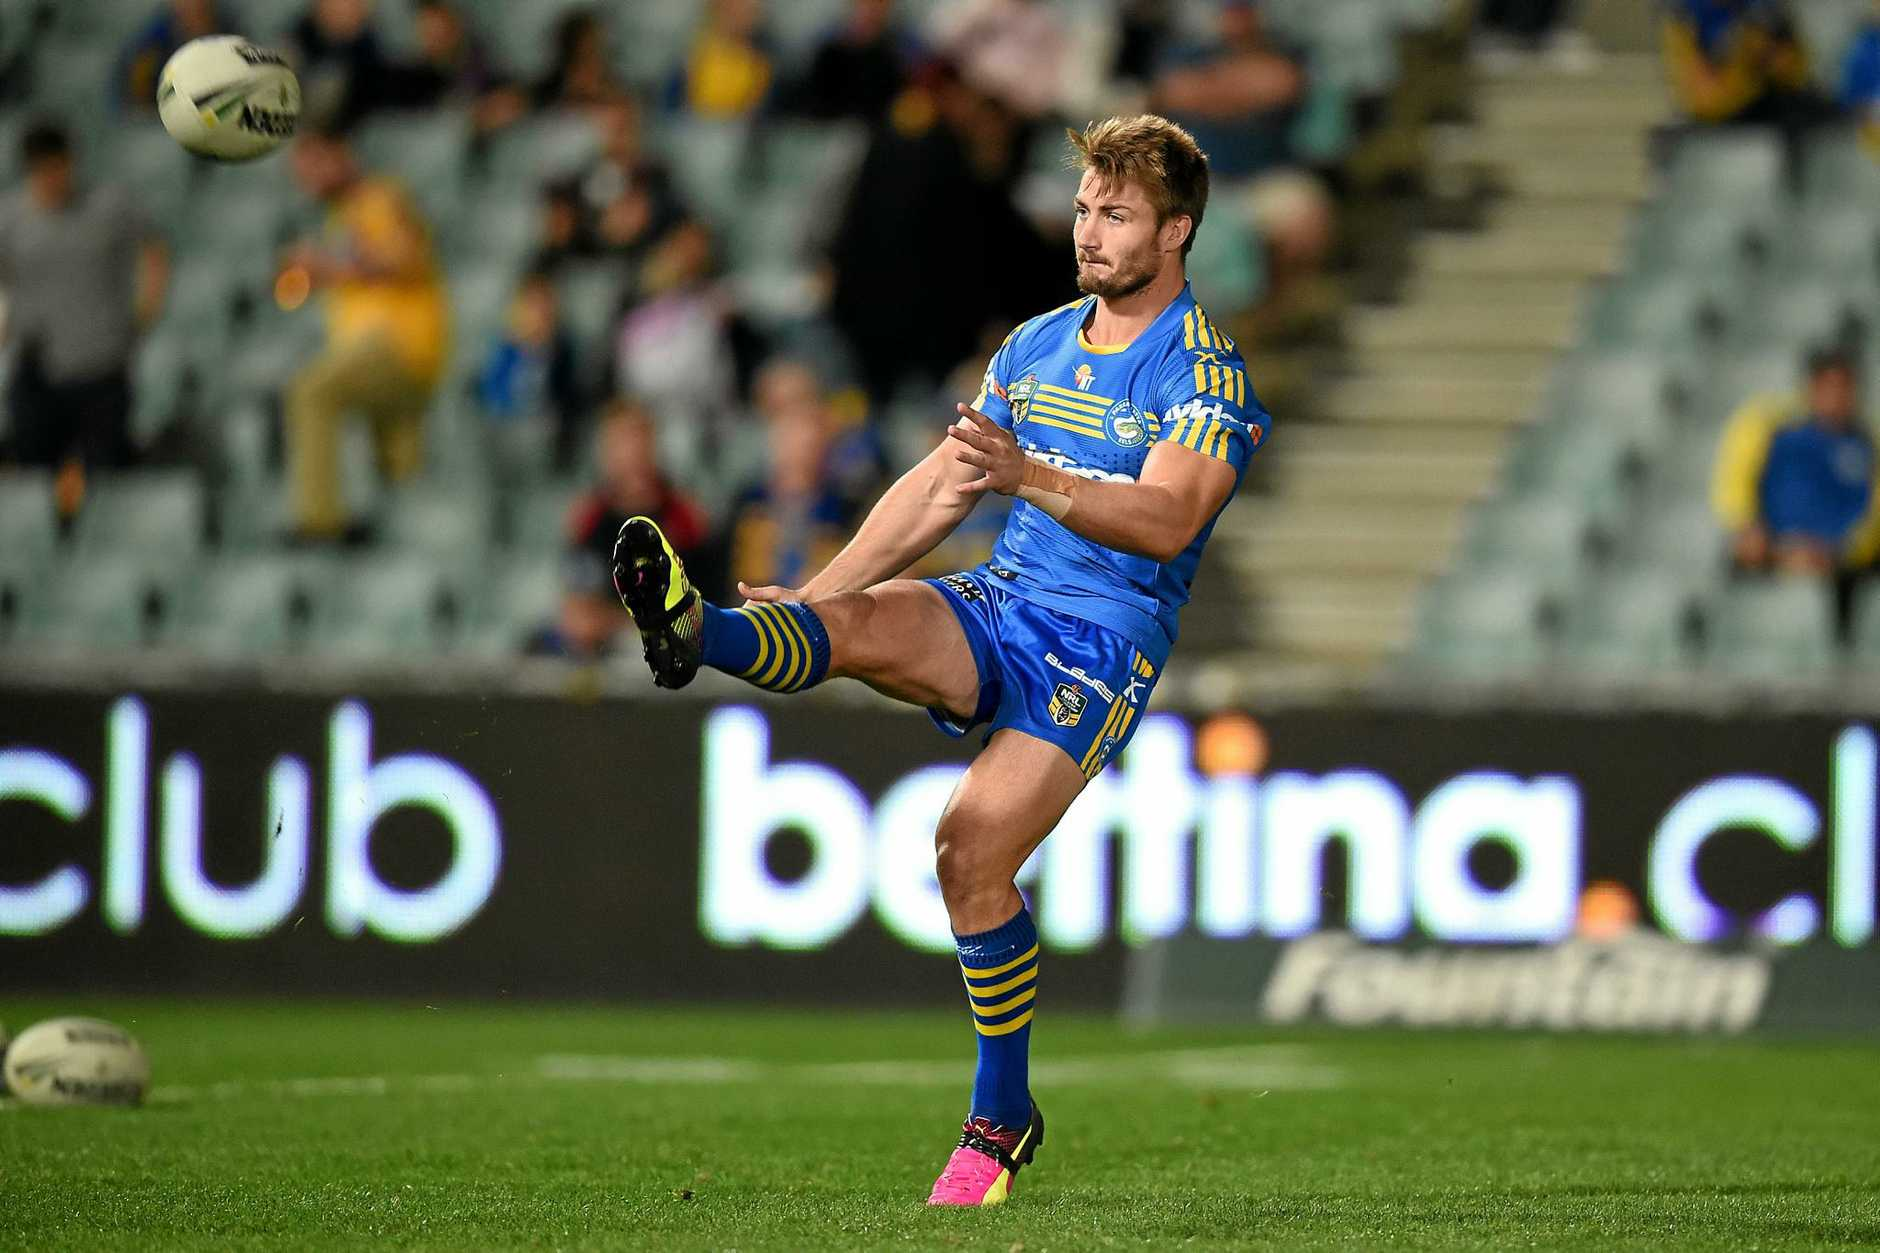 Kieran Foran during his time with the Eels.